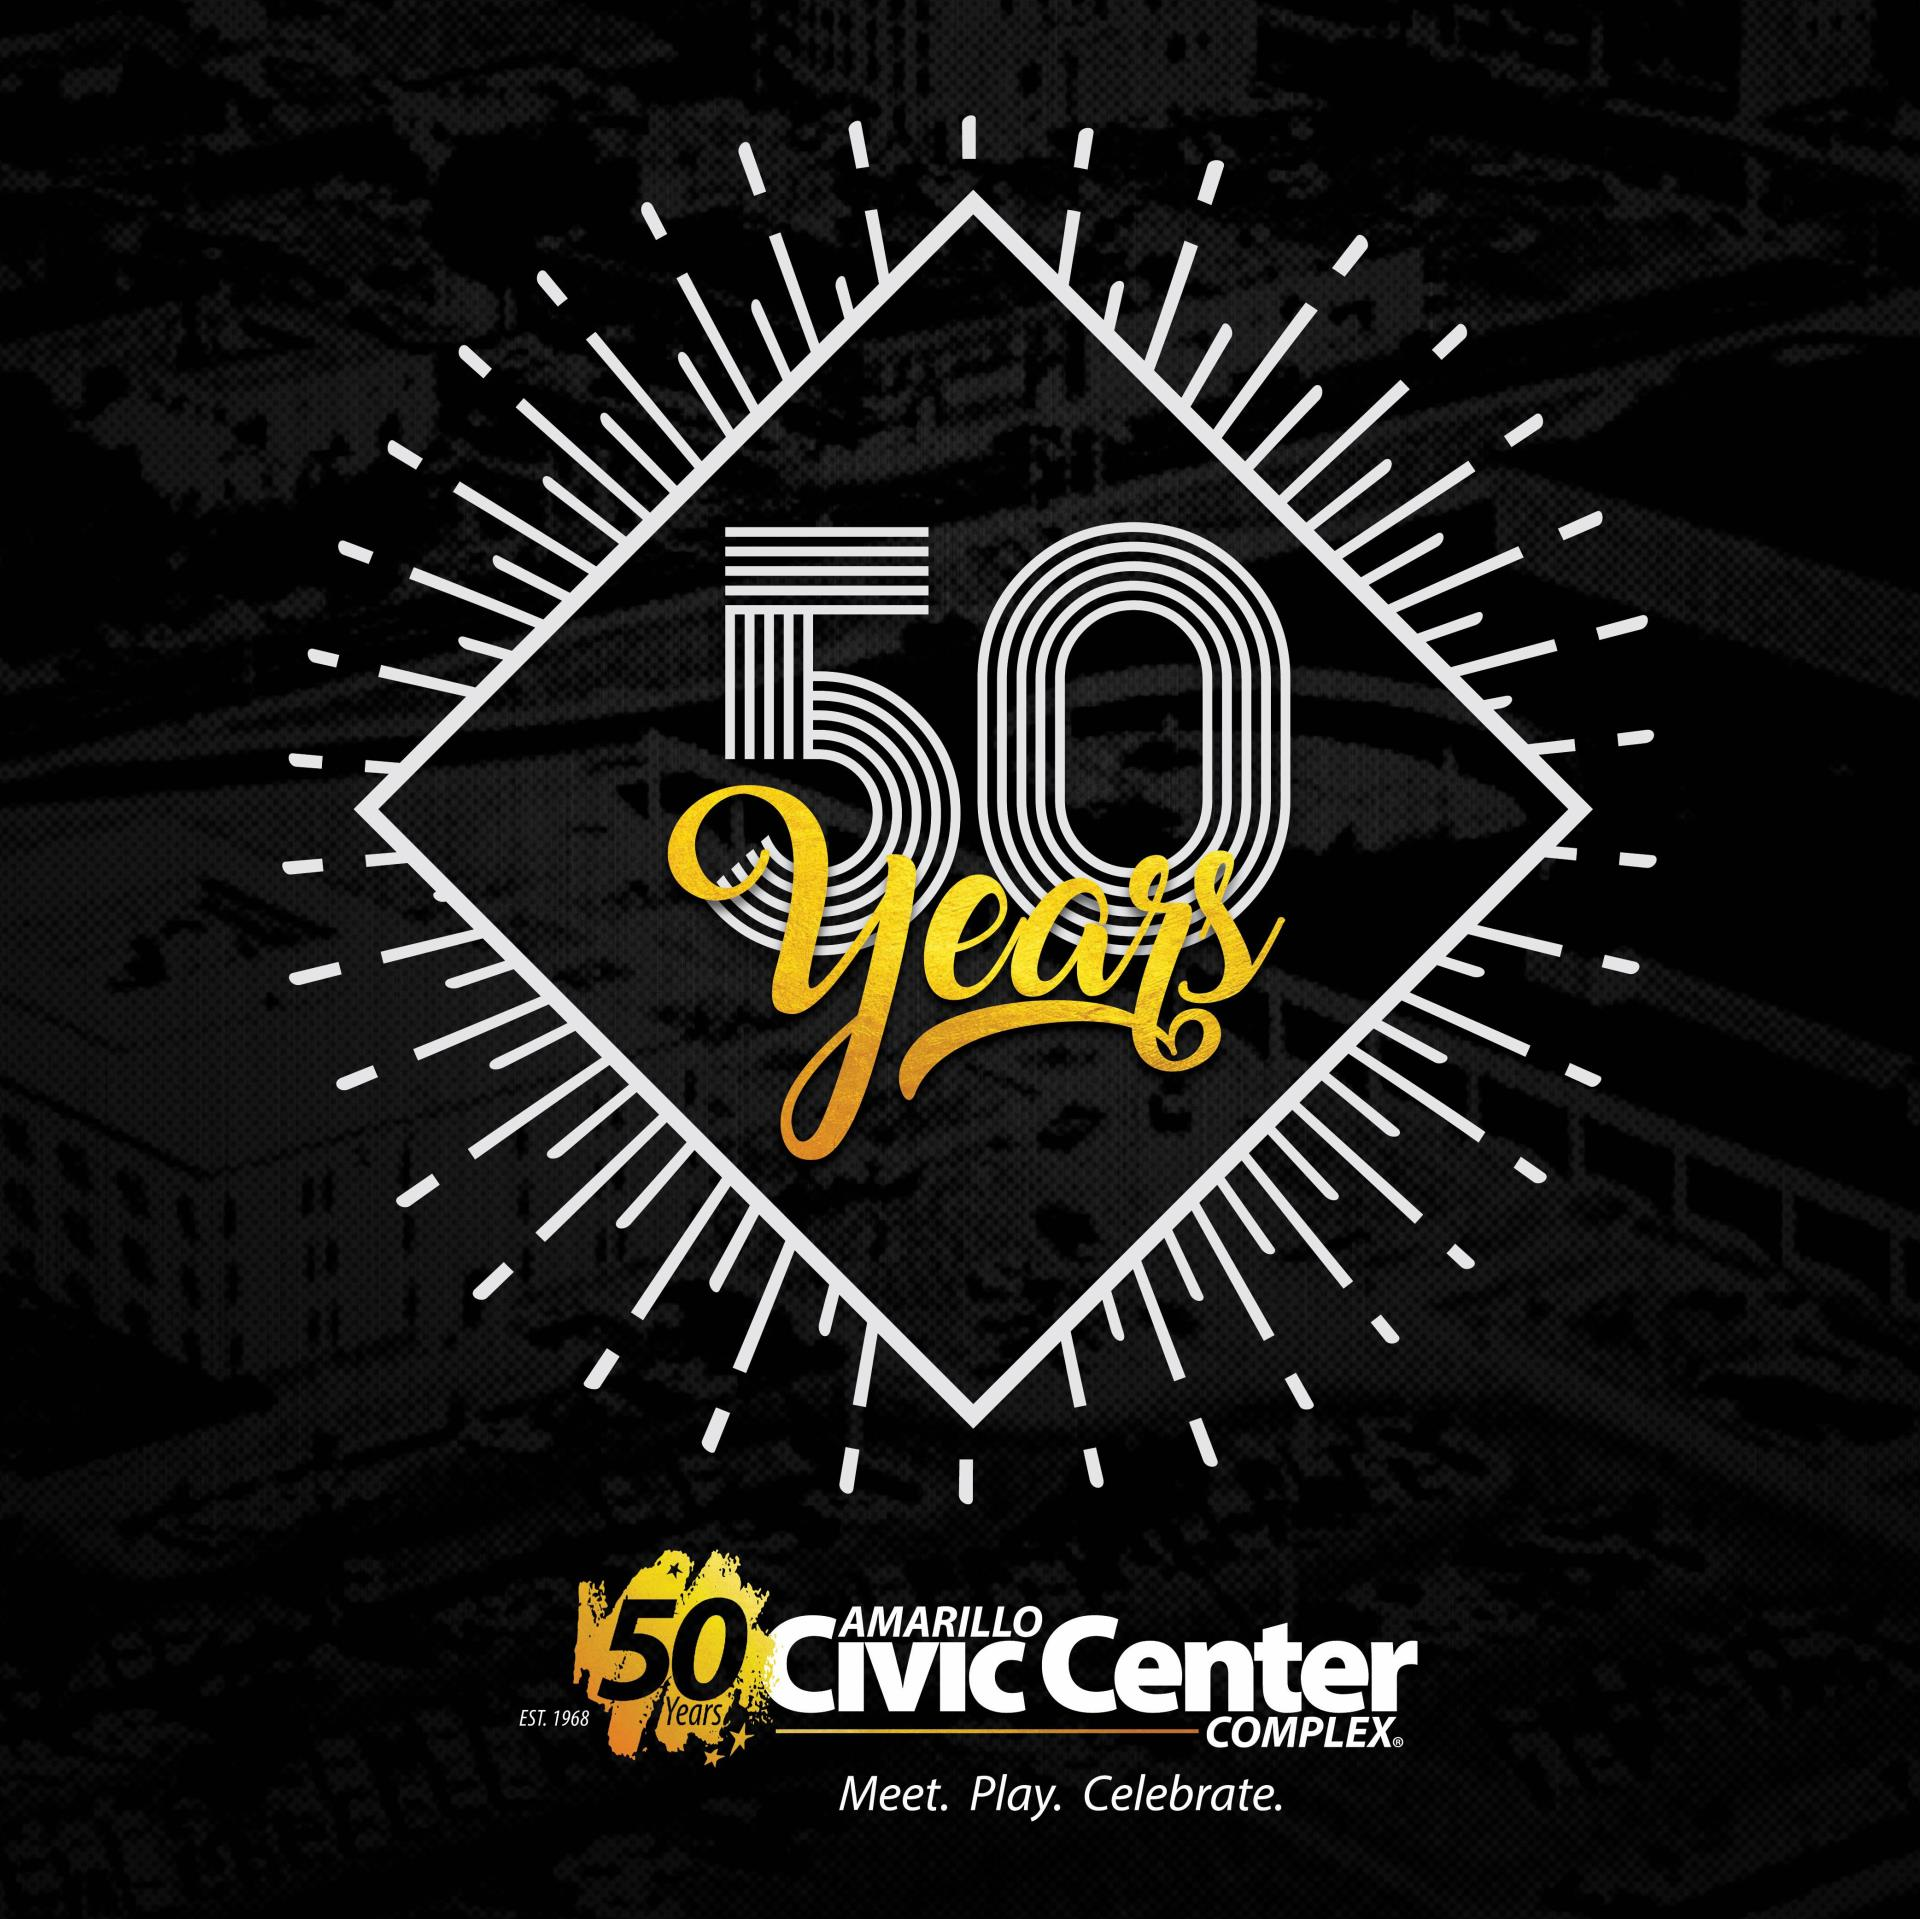 Amarillo Civic Center Complex 50th Anniversary